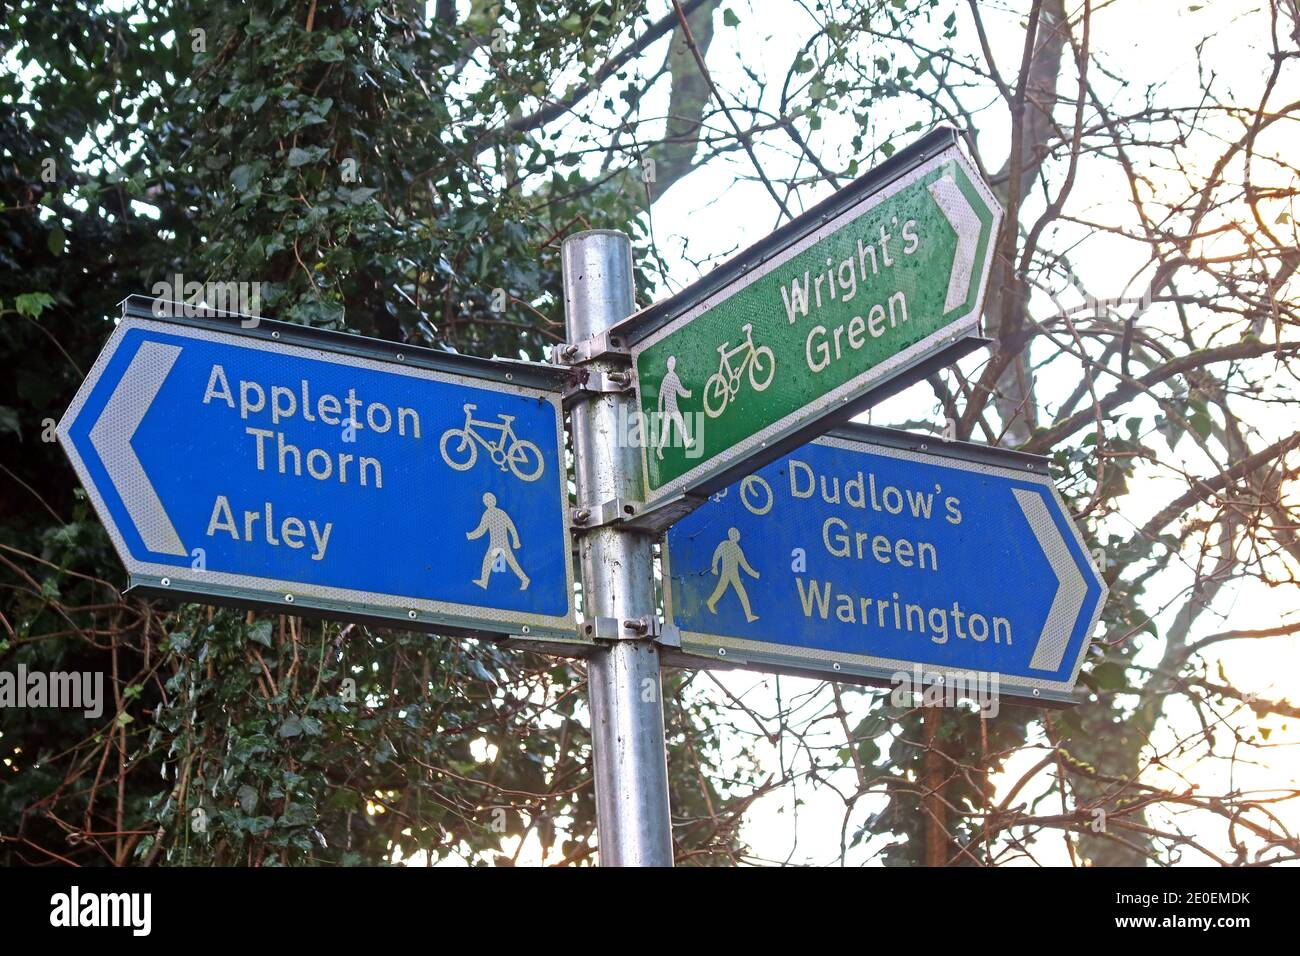 HotpixUK,@HotpixUK,GoTonySmith,town,centre,Cheshire,UK,England,signs,indicators,path,route,pathfinder,paths,Appleton cycle path sign,exercise,getting out,Appleton,cycle,cycle routes,national cycle network,cycle network,bike rides,cycling routes,off-road,countryside,rural,Lumb Brook Valley,Lumb Brook Road,The Dingle